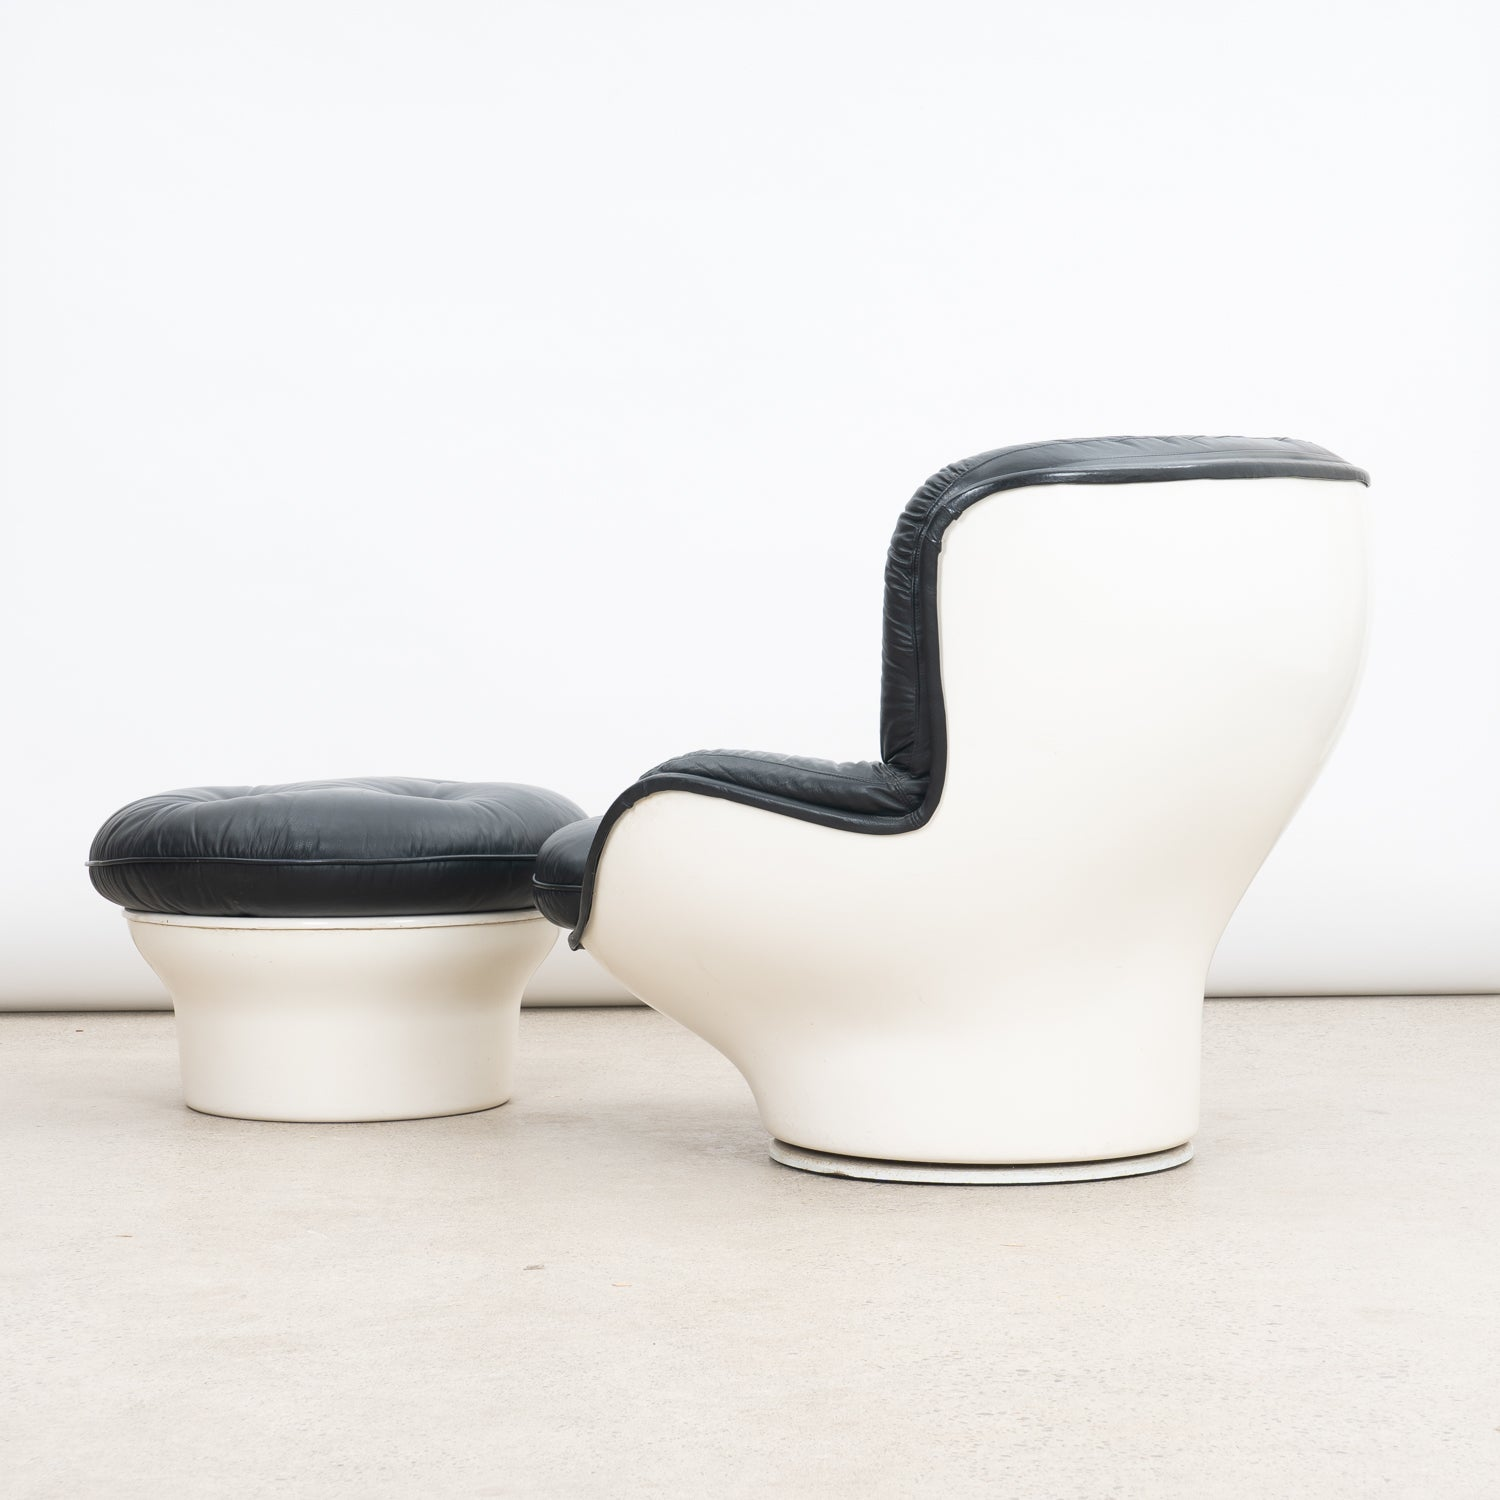 'Karate' Chair & Ottoman by Michel Cadestin